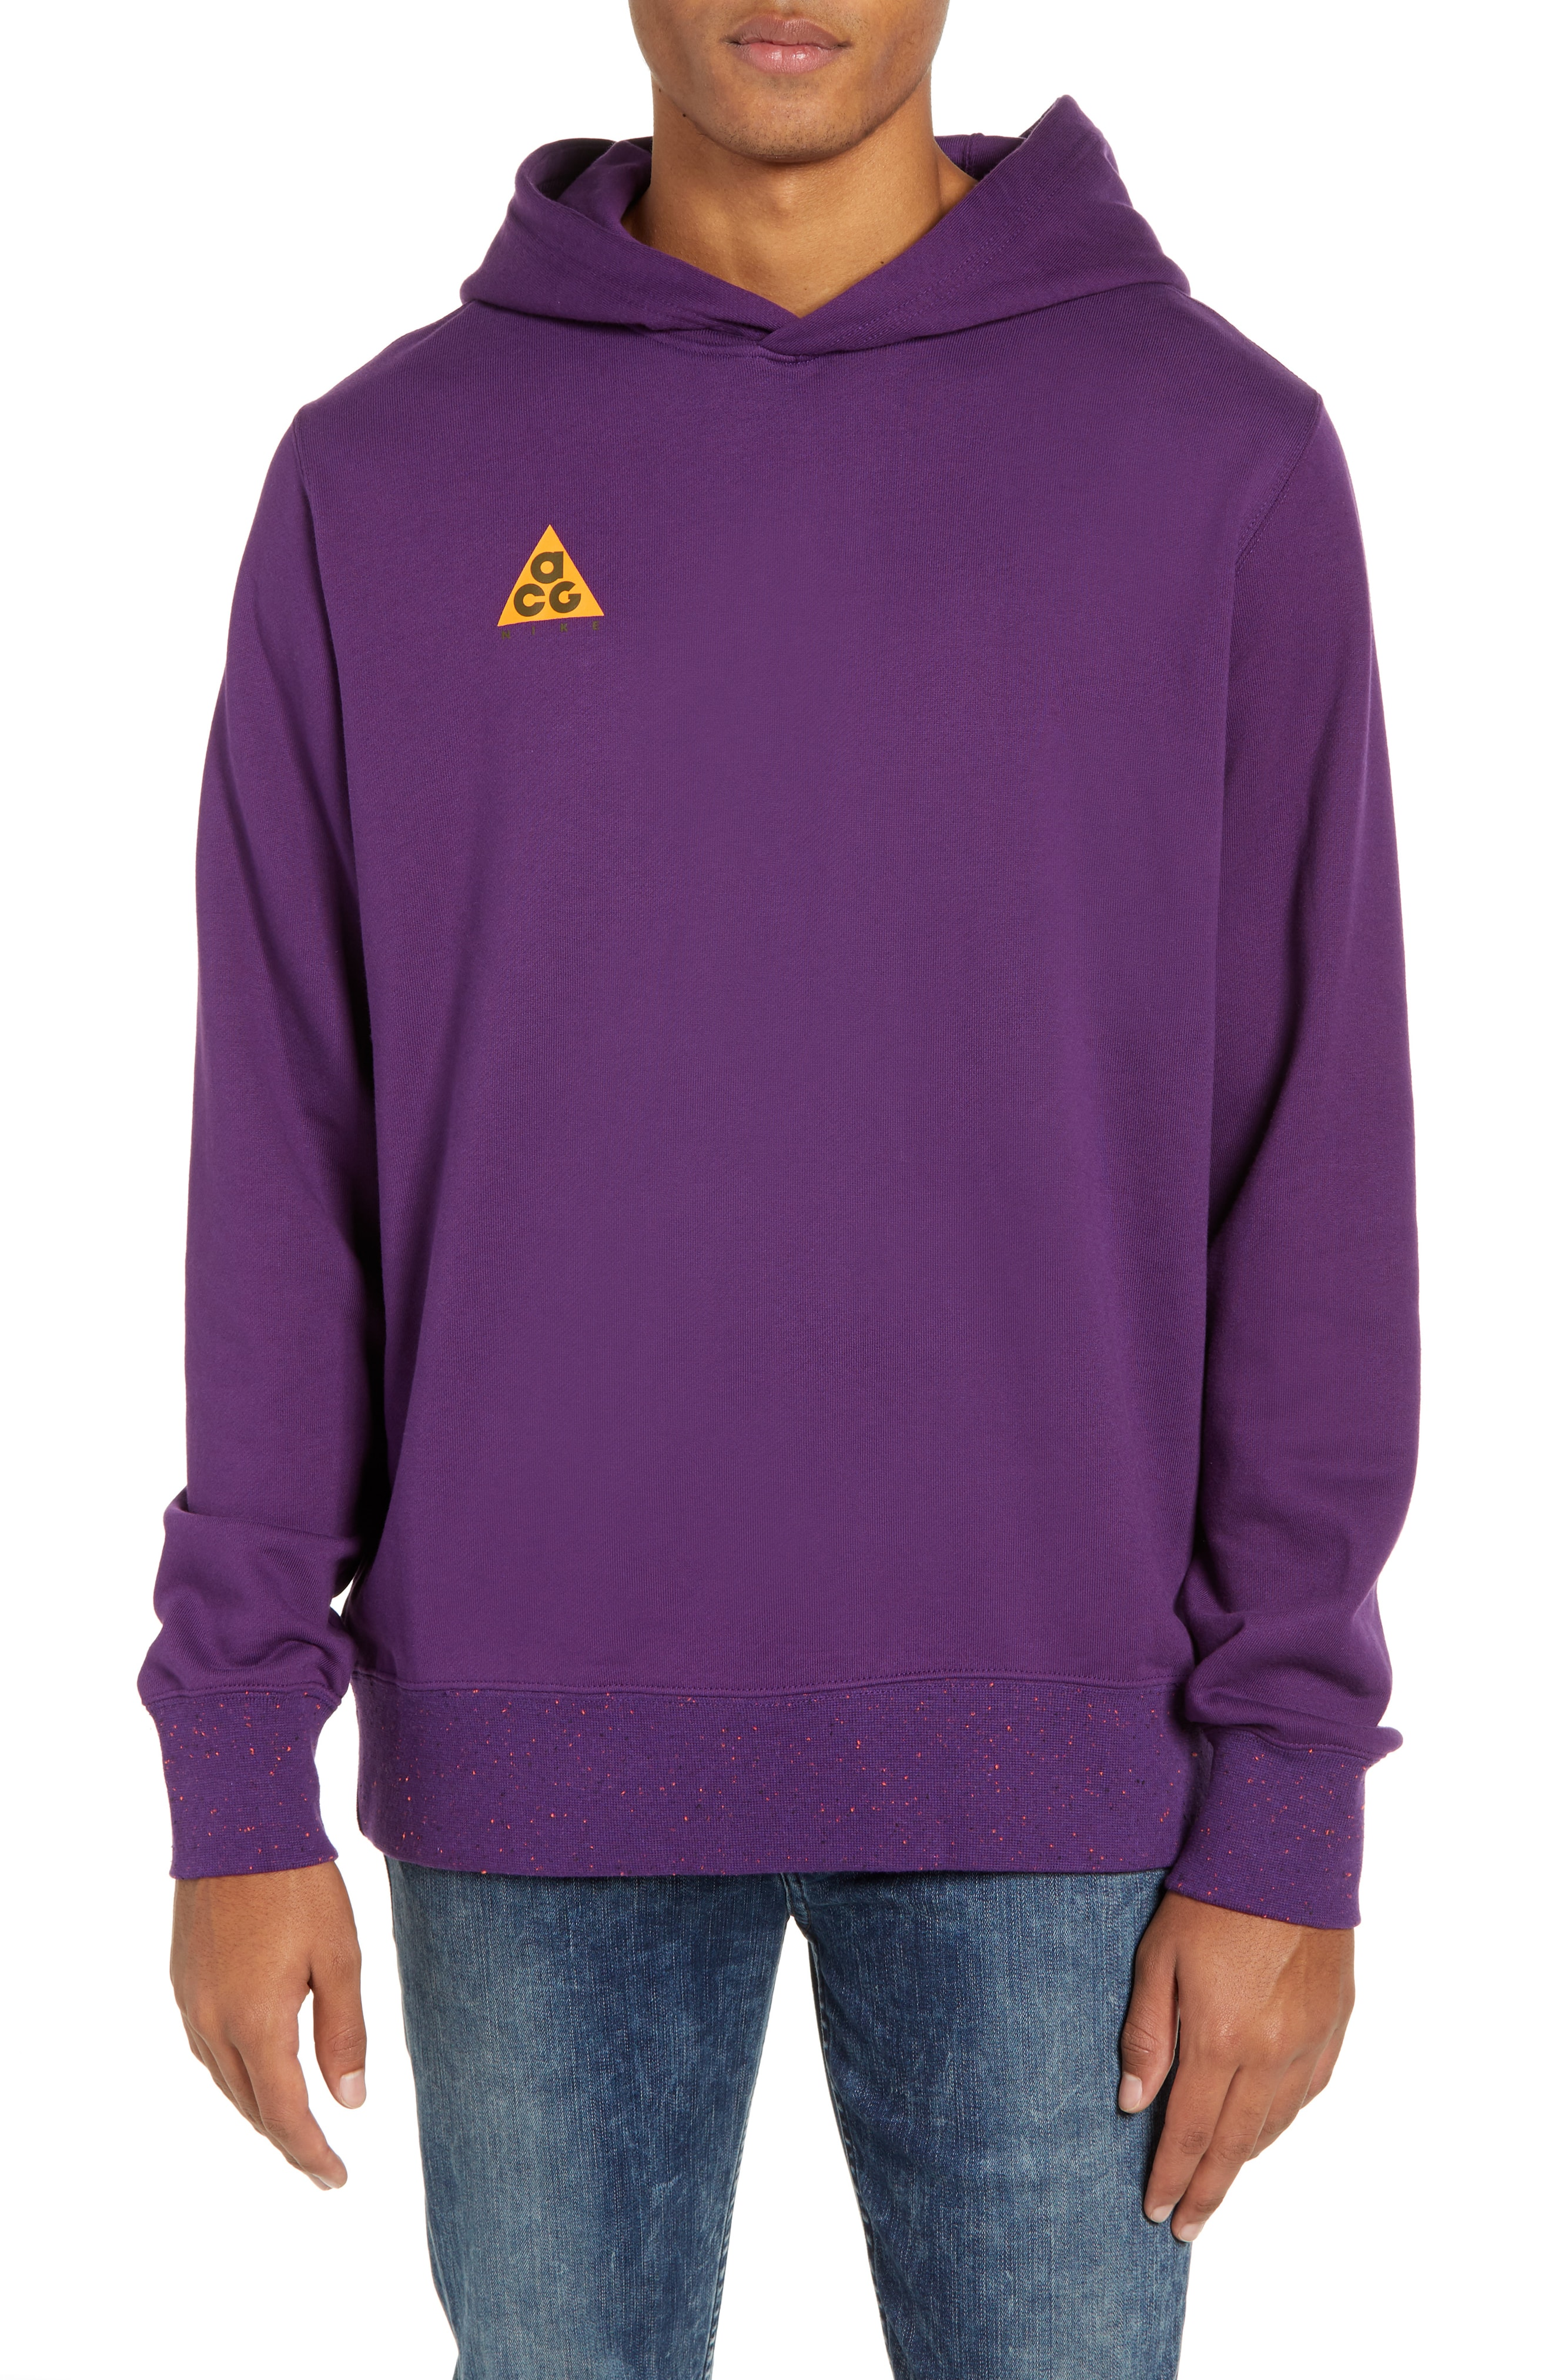 Men's Hoodies & Sweatshirts | Nordstrom